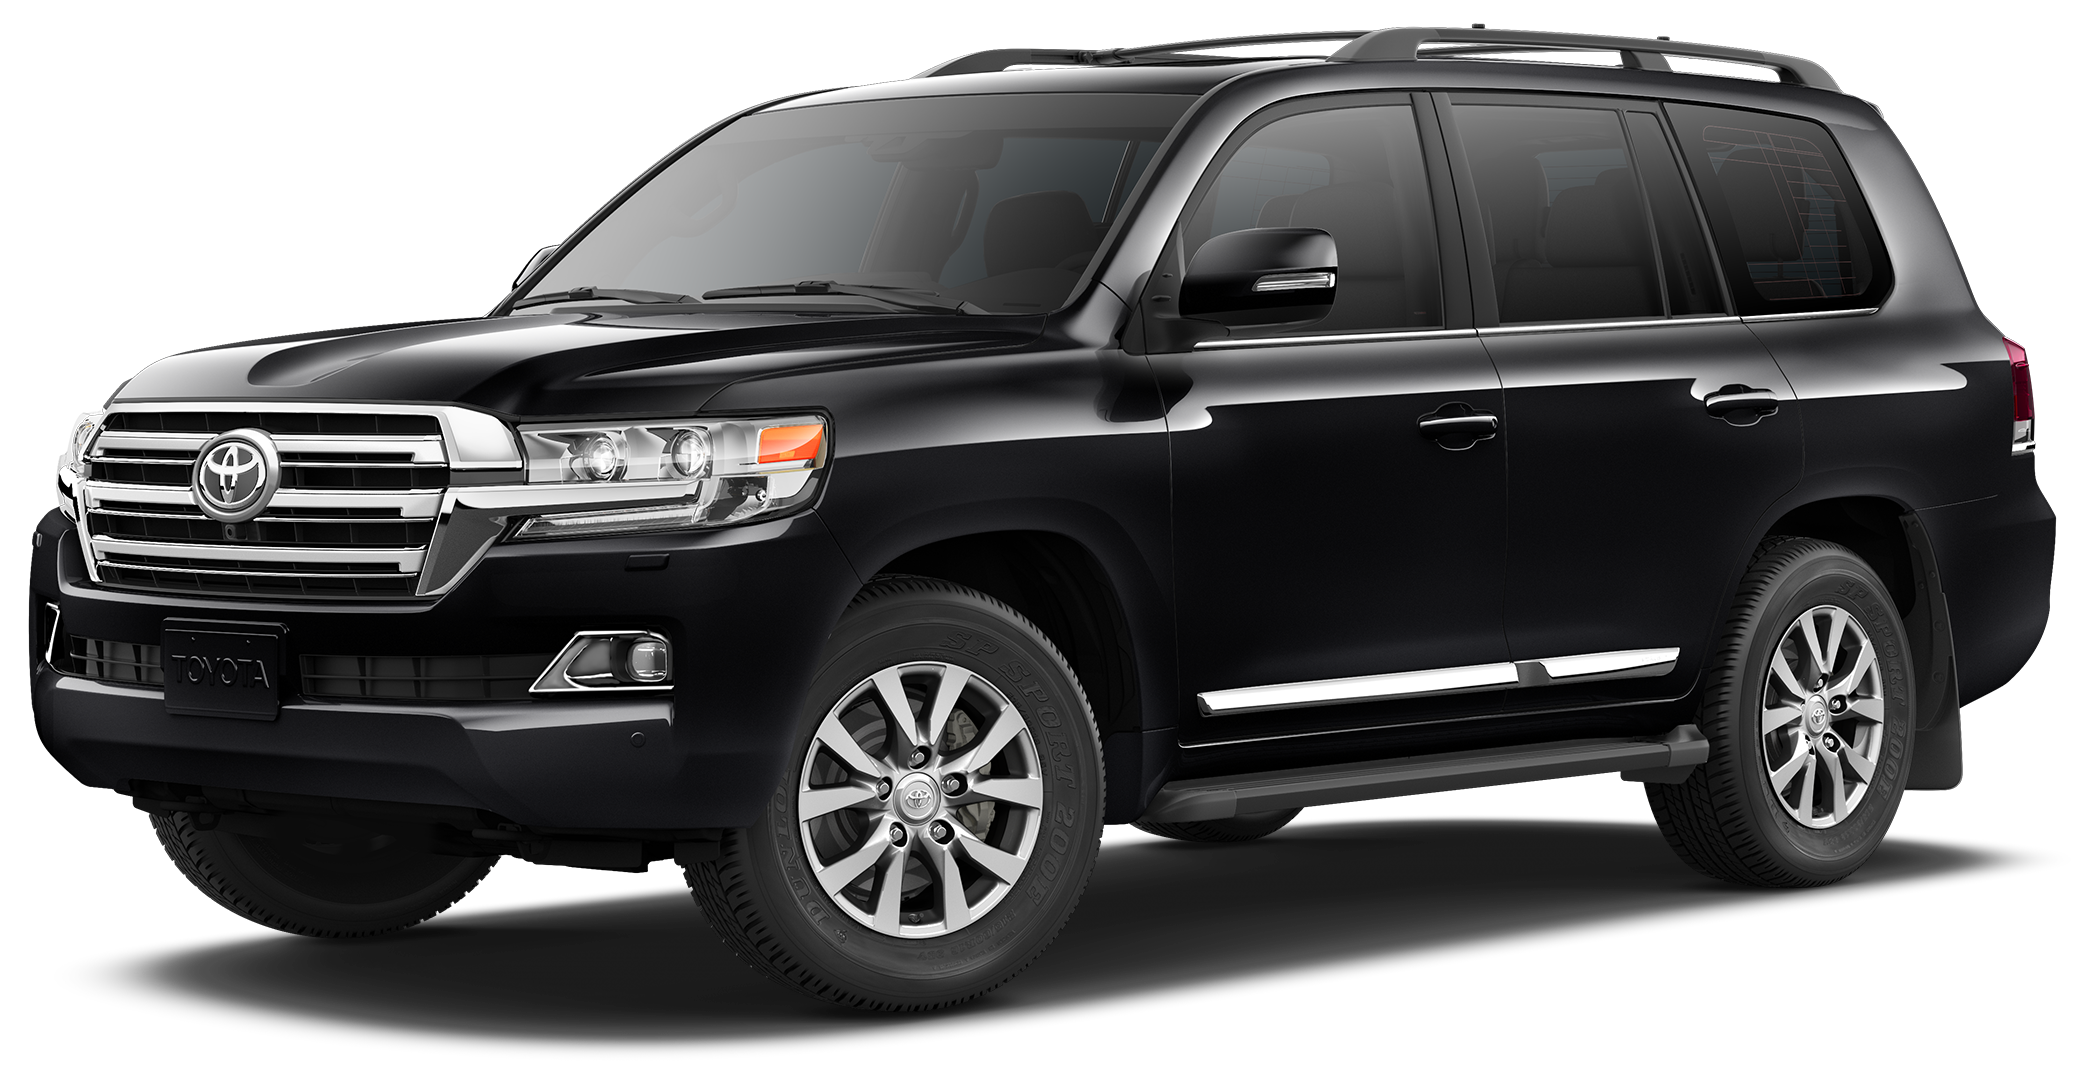 2020 Toyota Land Cruiser Incentives, Specials & Offers in ...